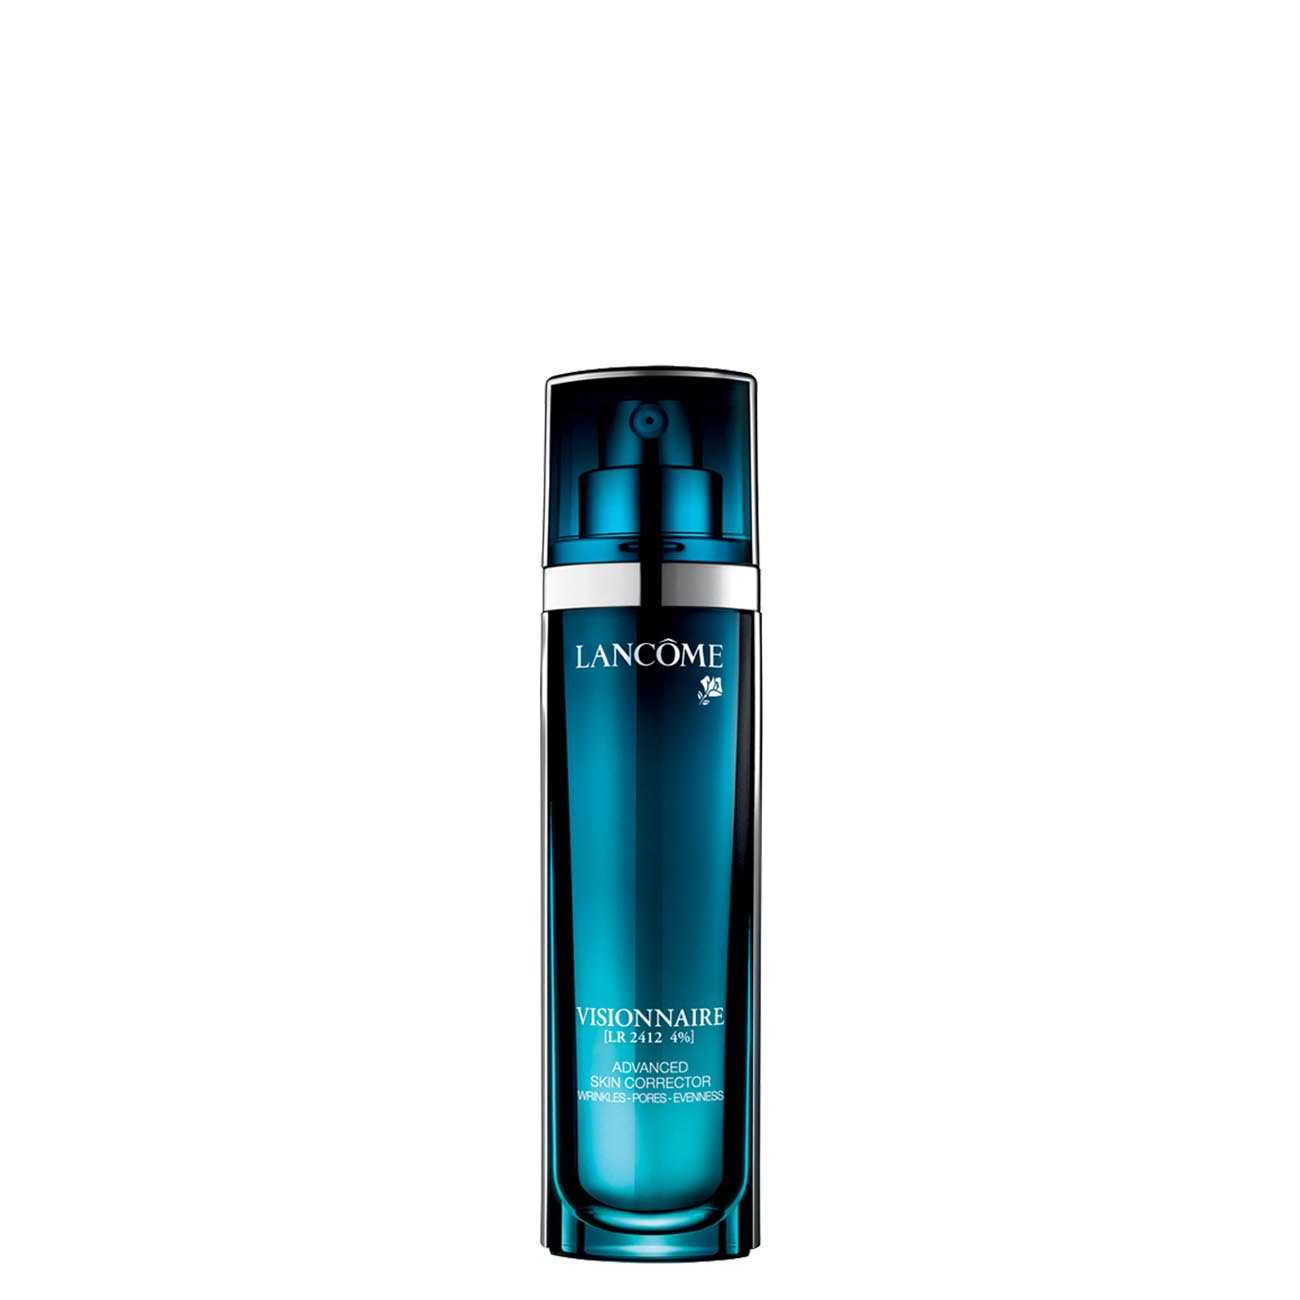 VISIONNAIRE ADVANCED SKIN CORRECTOR 30 ML